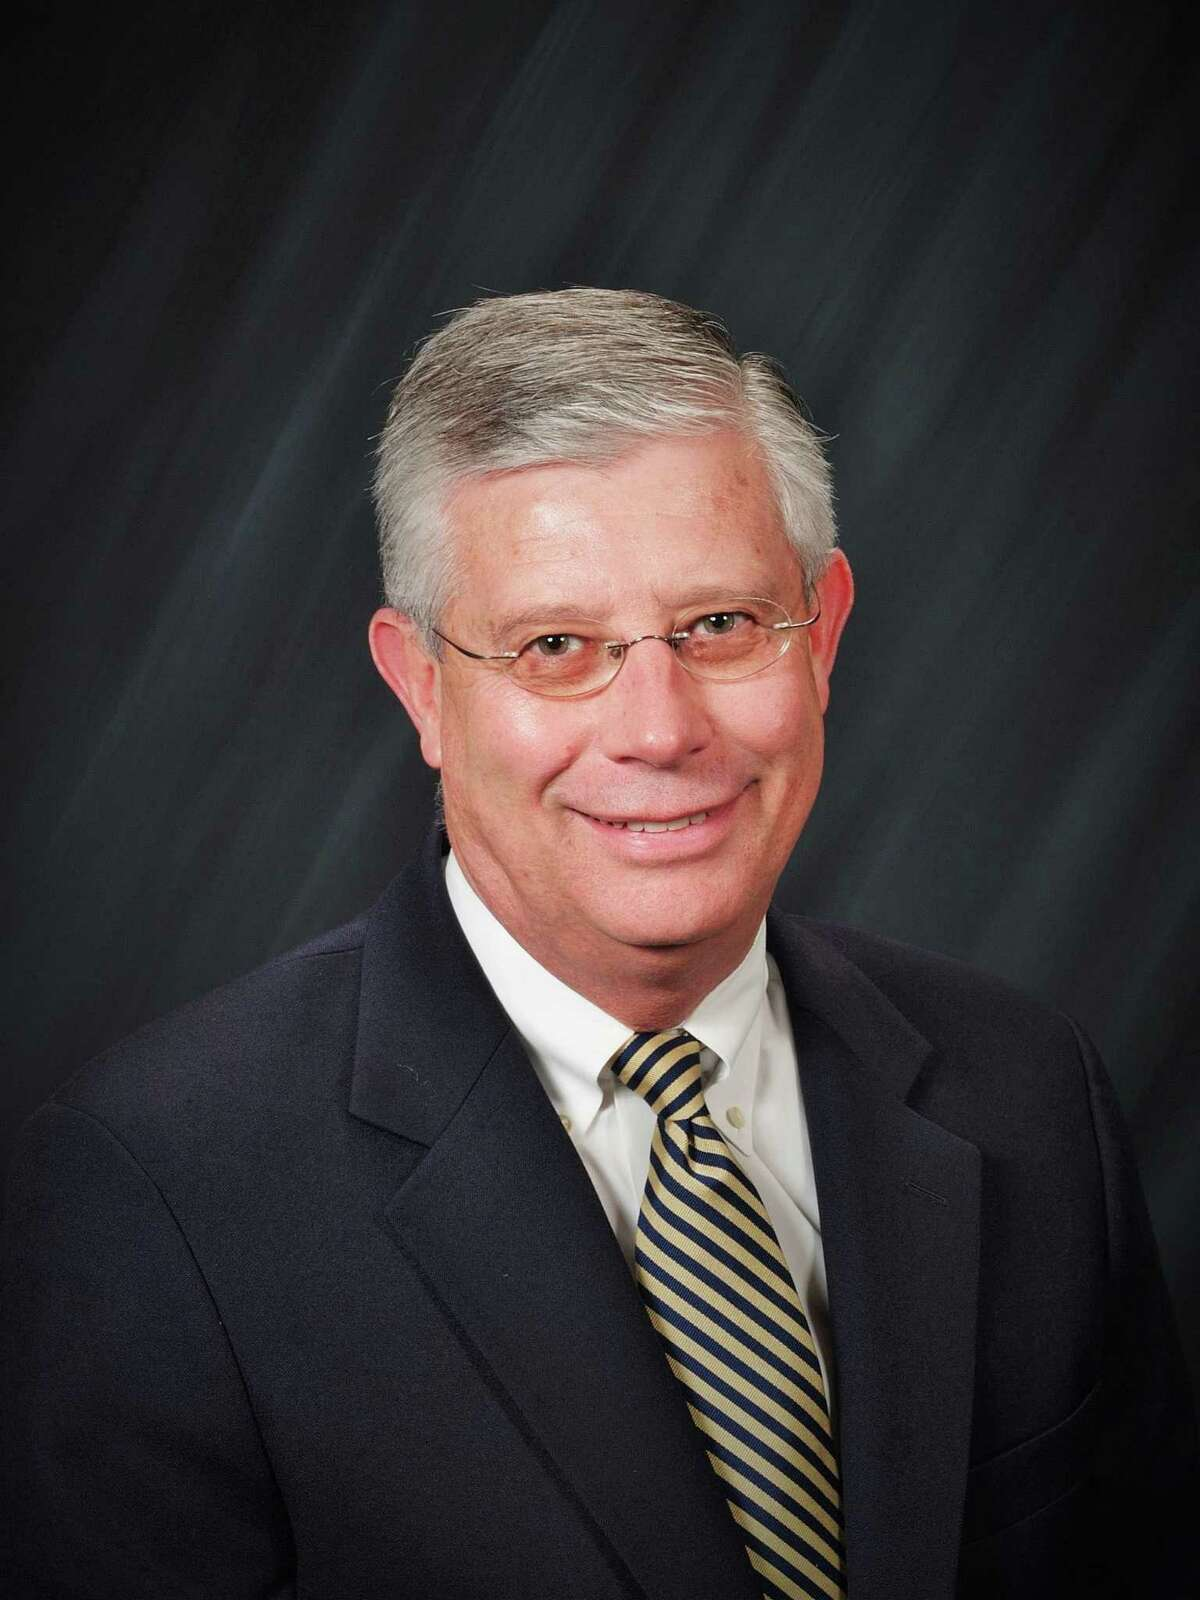 Bob Hebert is participating in the League of Women Voters Oct. 4 candidates' forum.